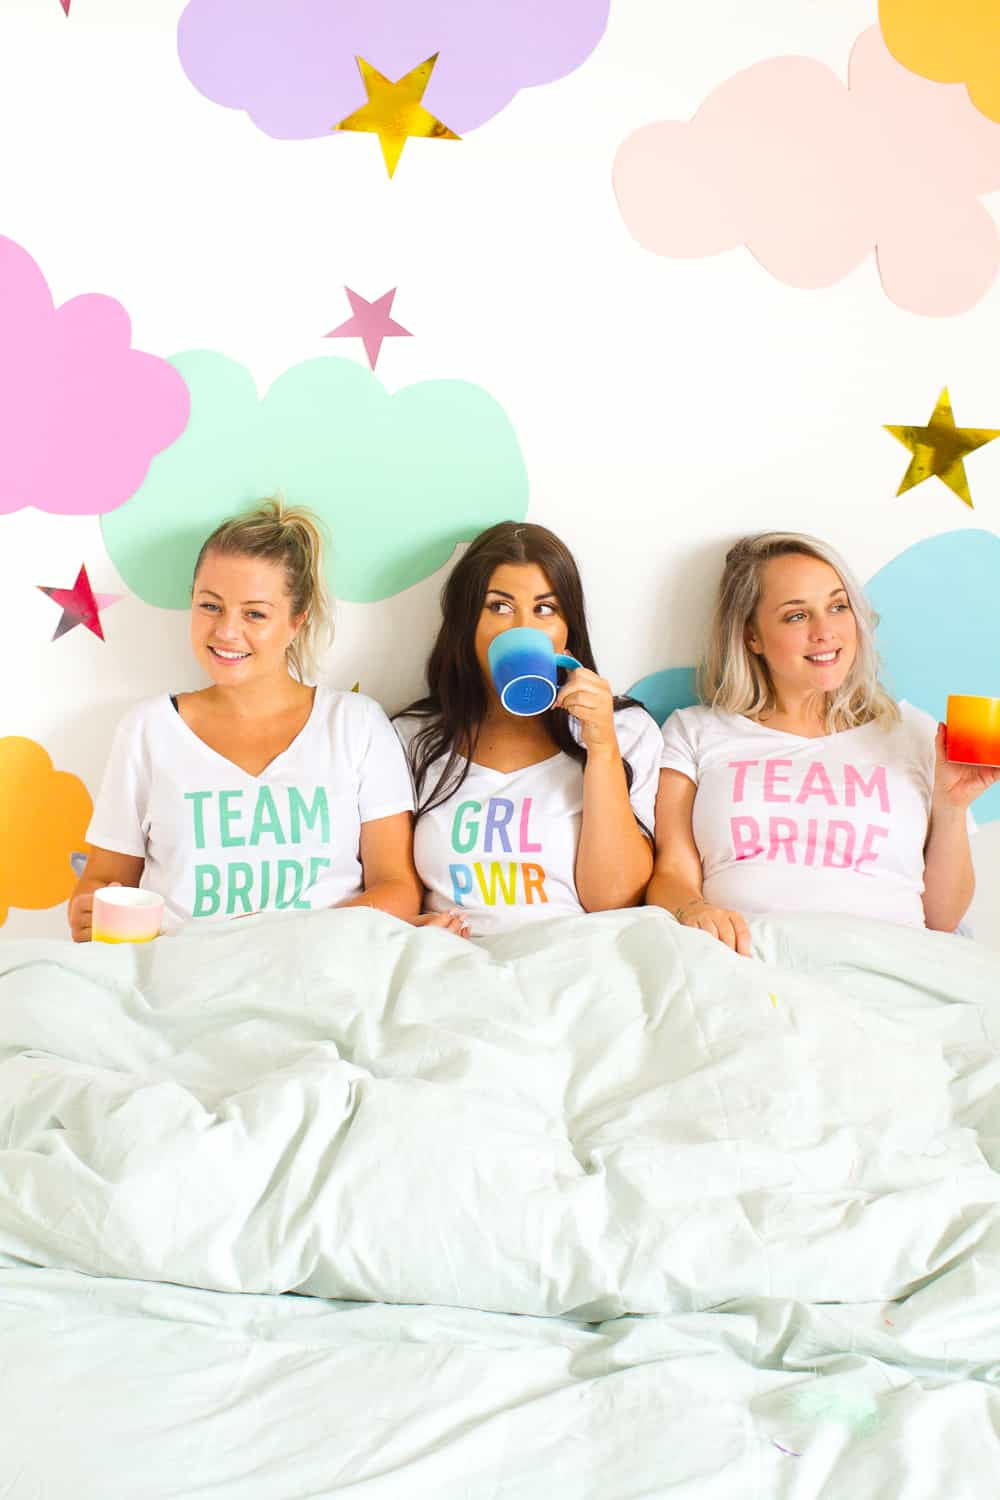 6 HEN PARTY PYJAMAS YOU LL LOVE FOR YOU AND YOUR BRIDE SQUAD! f4c31c767